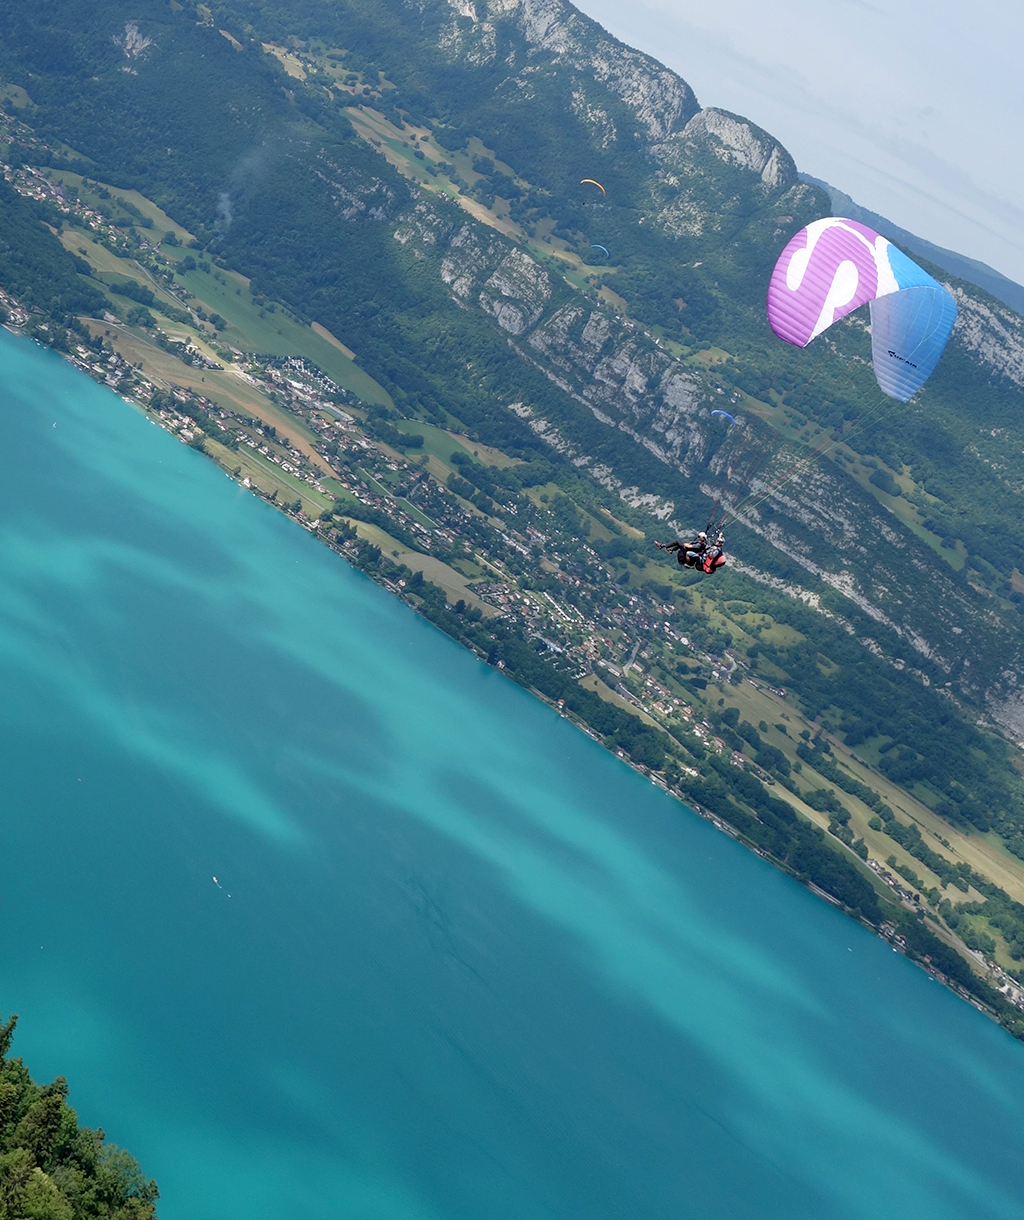 Rob doing Paragliding Tricks in France